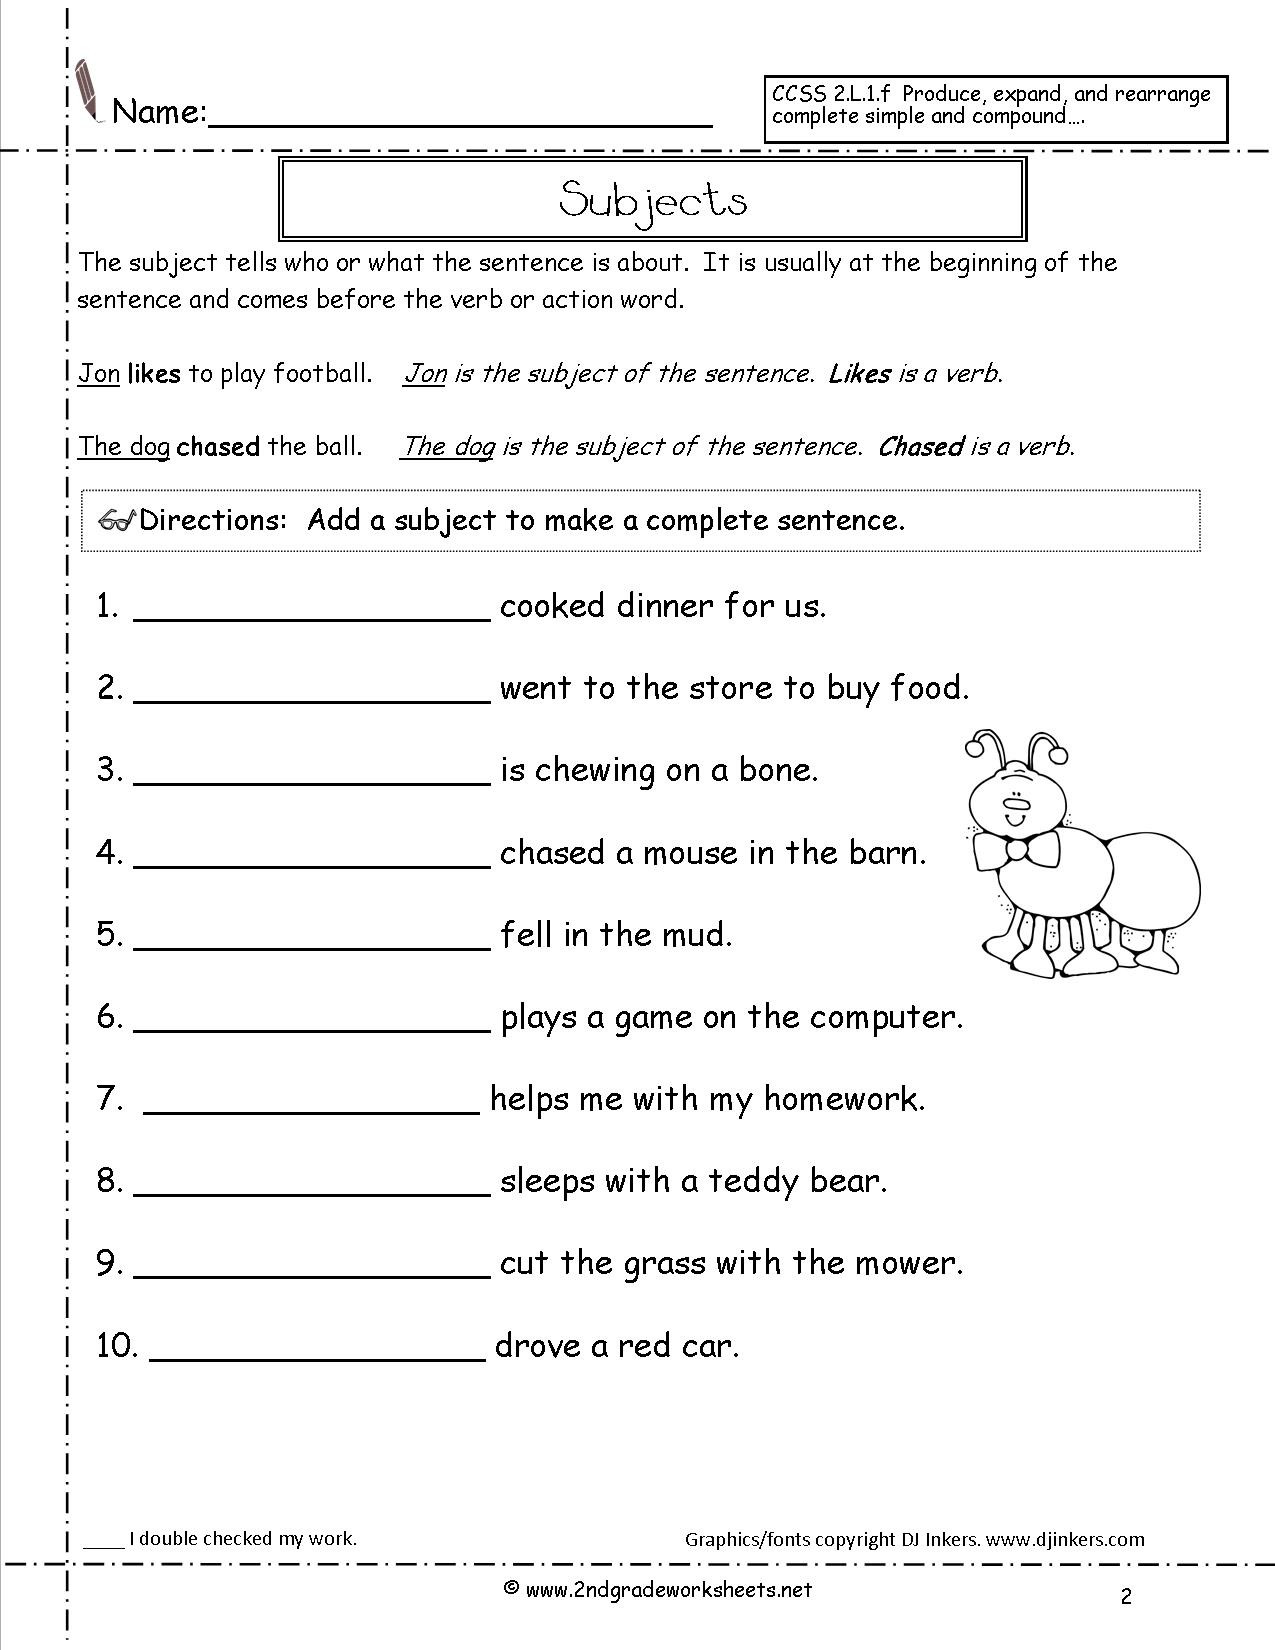 Complete Sentences Worksheets 3rd Grade Basic Math Words Printable Cursive Worksheets 3rd Grade